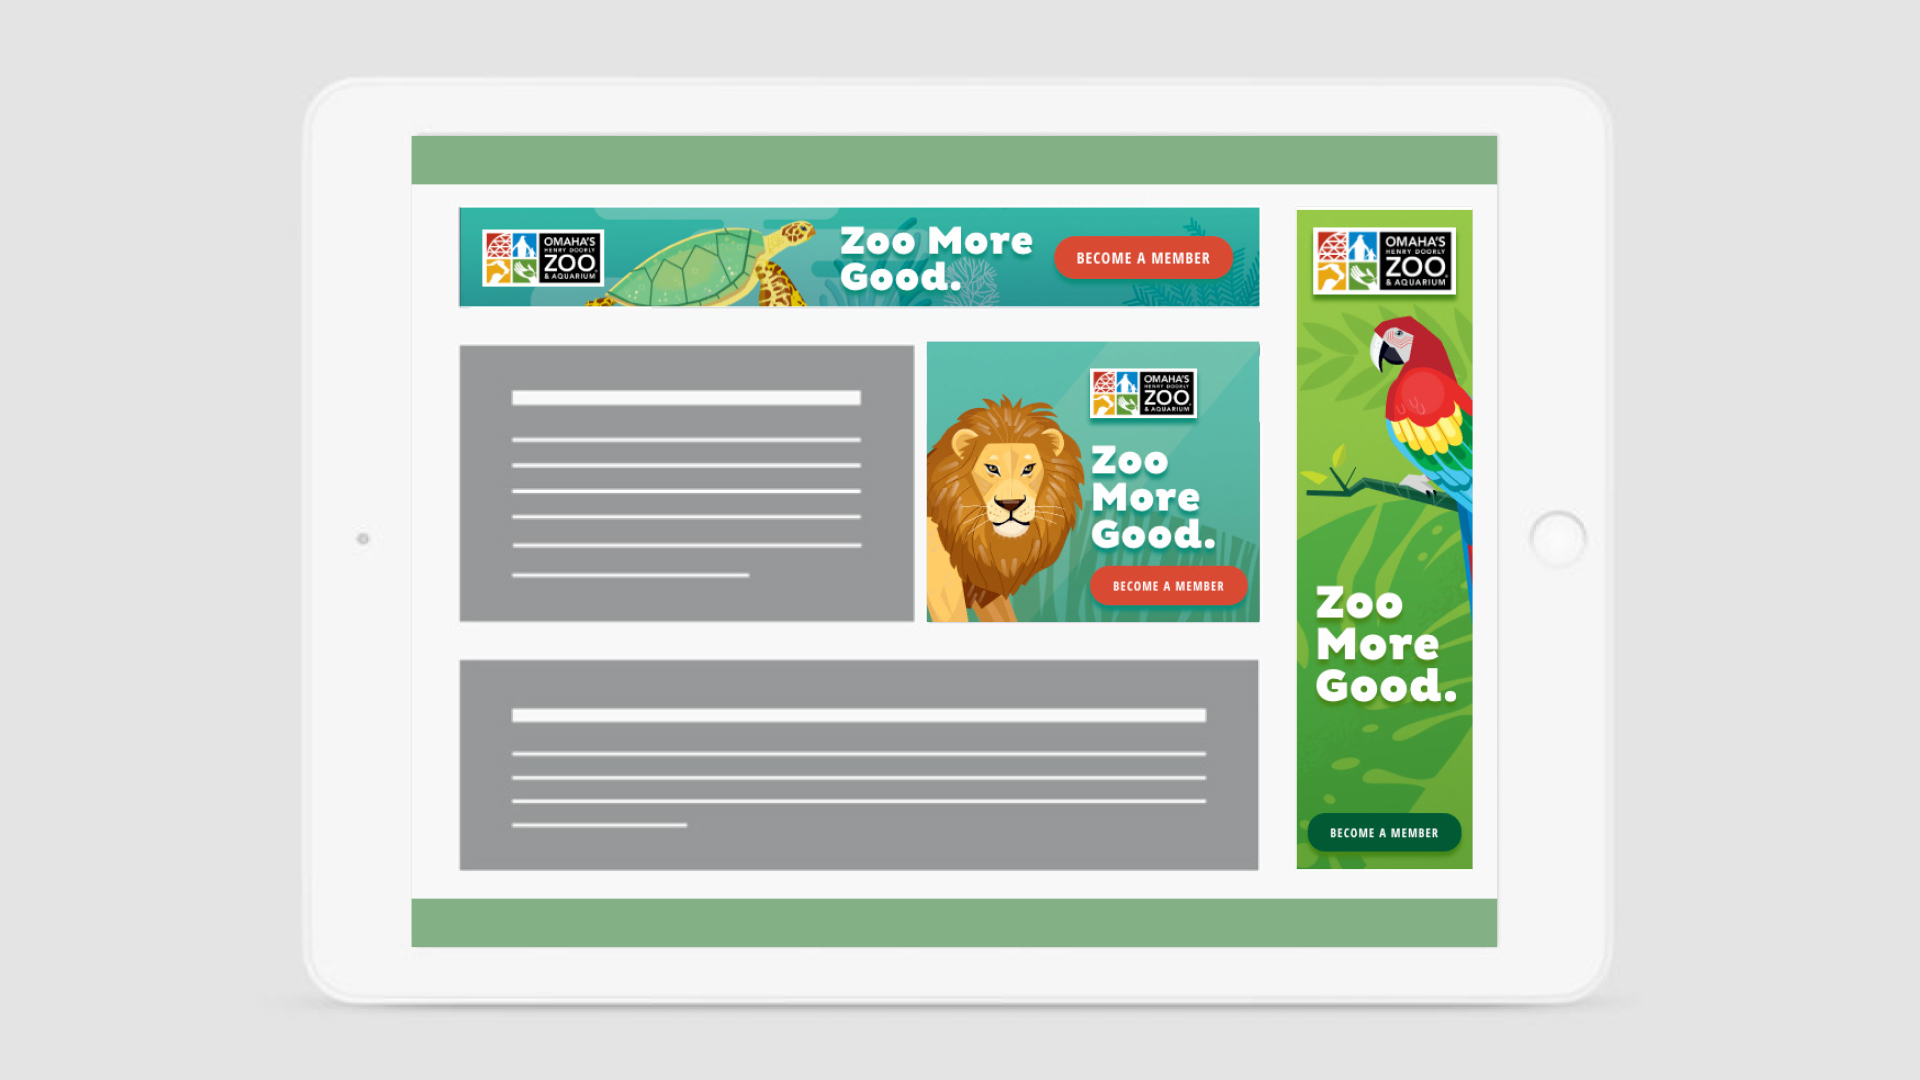 Zoo More Good Display Ads